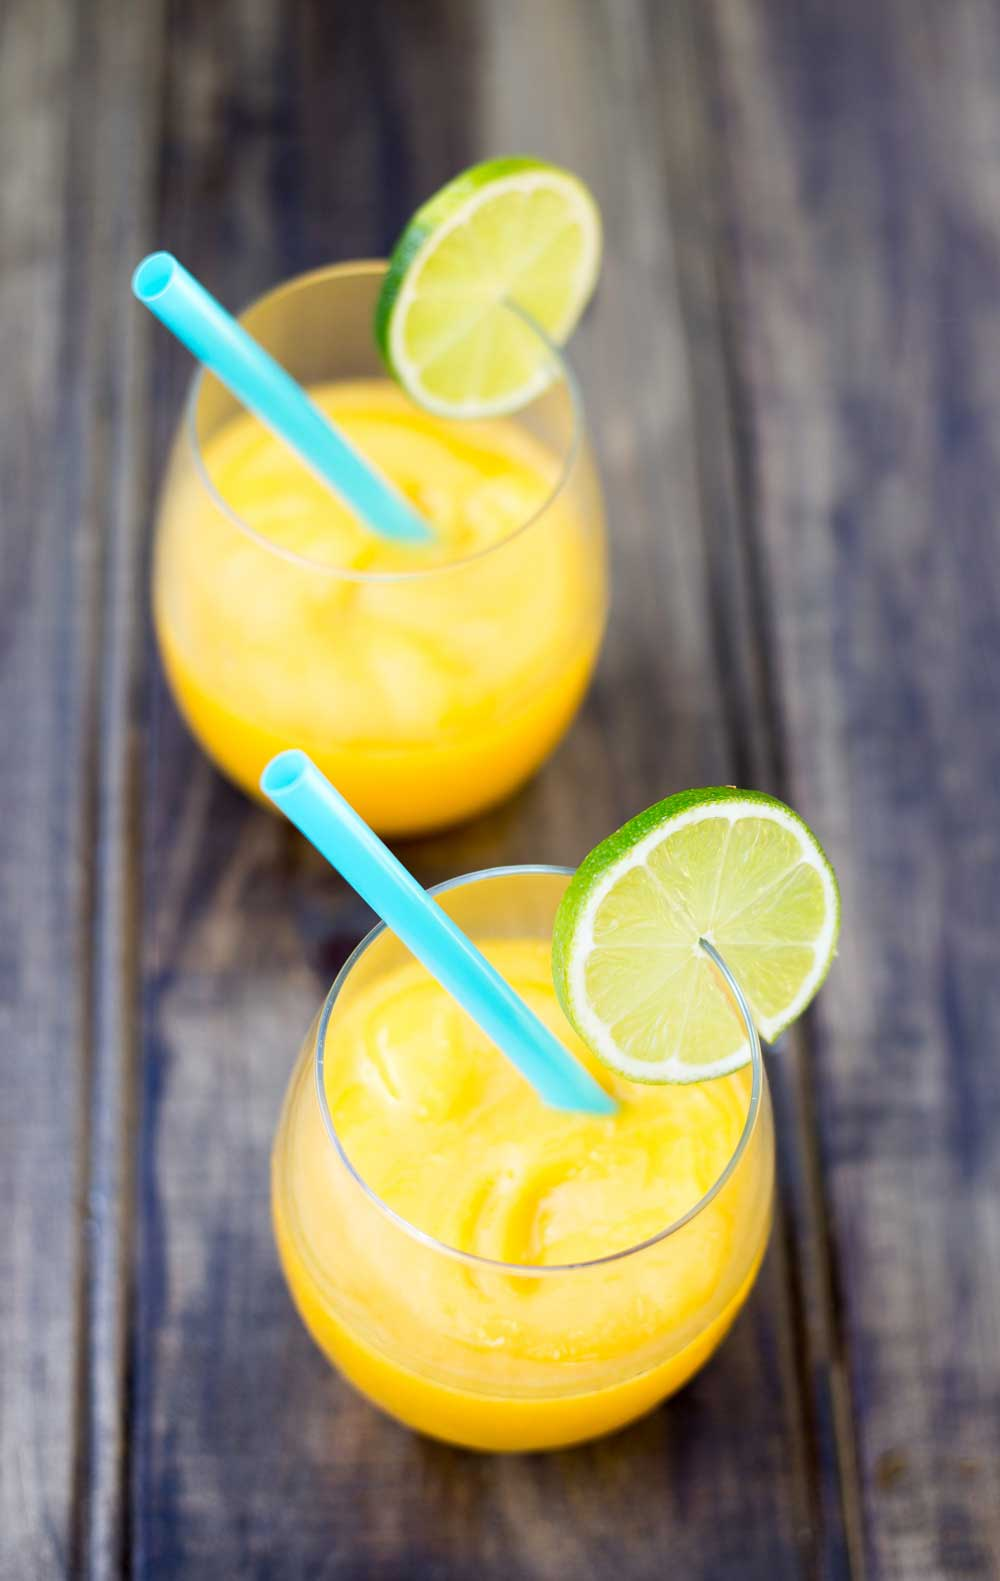 Juicy mango, a hint of lime and a shot of vodka. Simple, cooling and delicious.....also known as Slush puppies or Slurpees for adults :-)